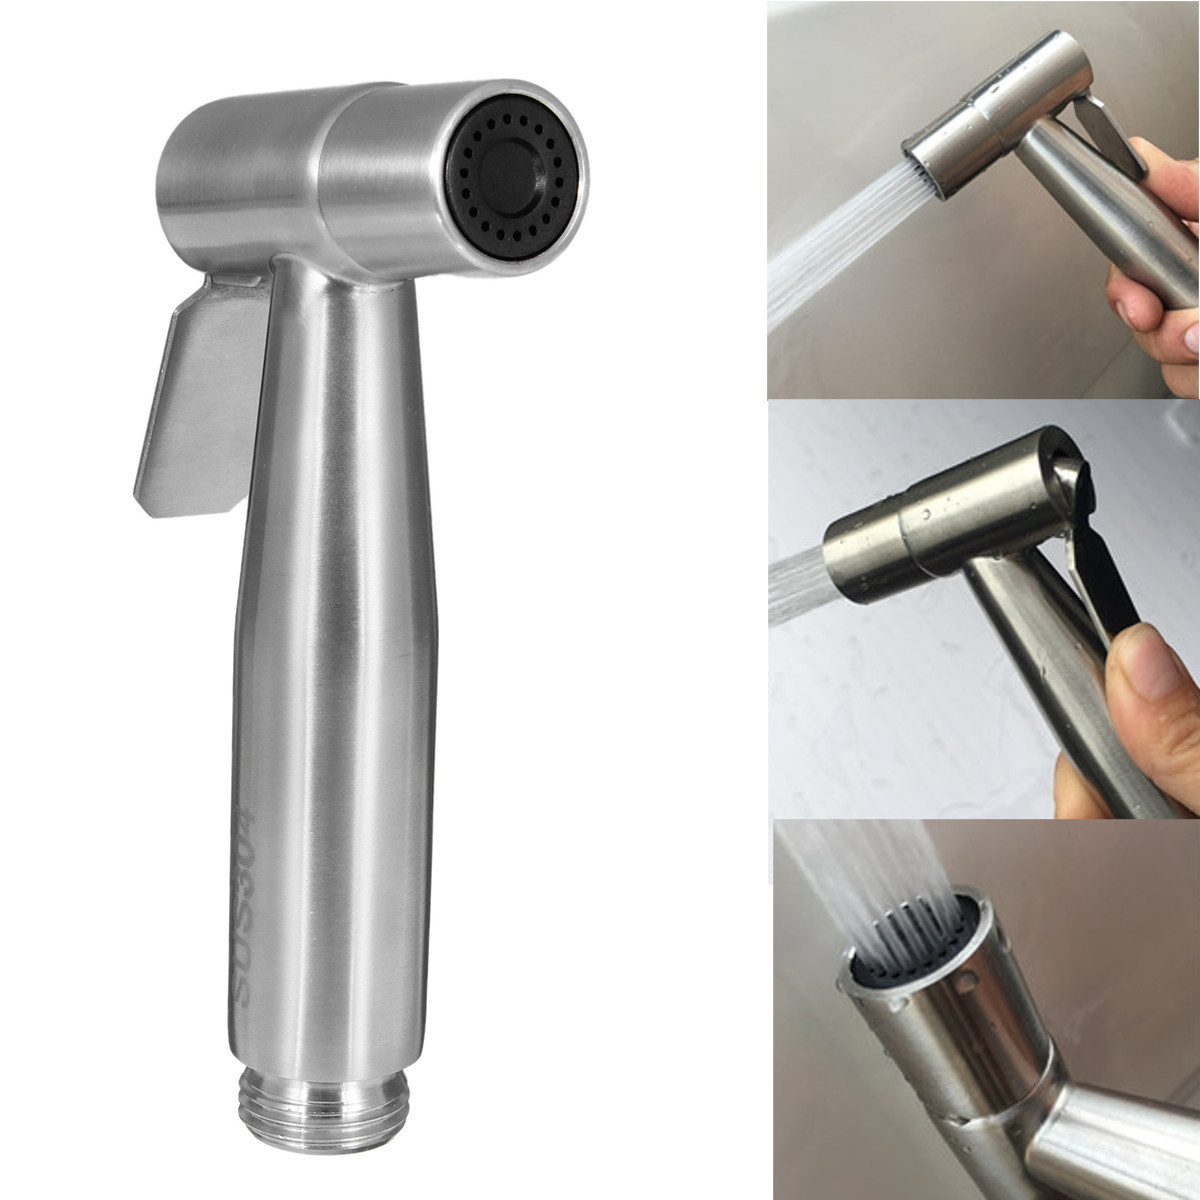 Stainless Steel Hand Held Shattaf Toilet Bidet Sprayer Bathroom Shower Head